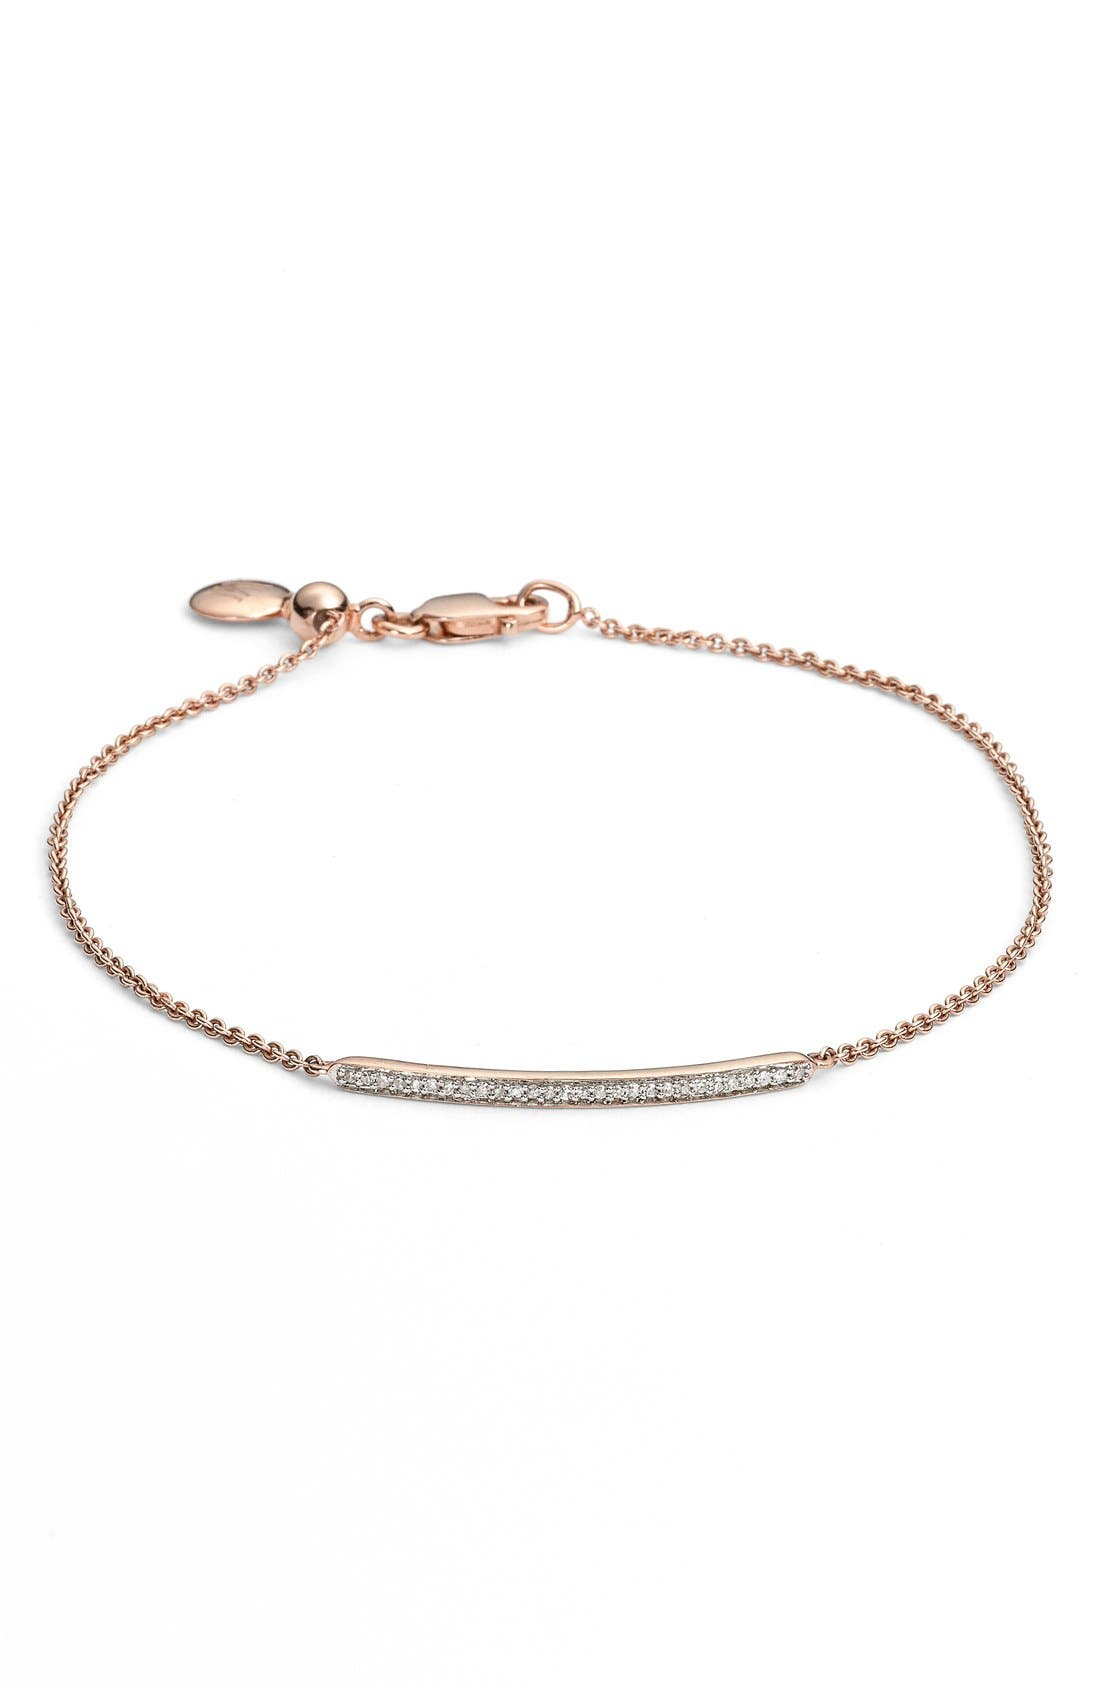 'Skinny' Diamond Bracelet,                         Main,                         color, ROSE GOLD